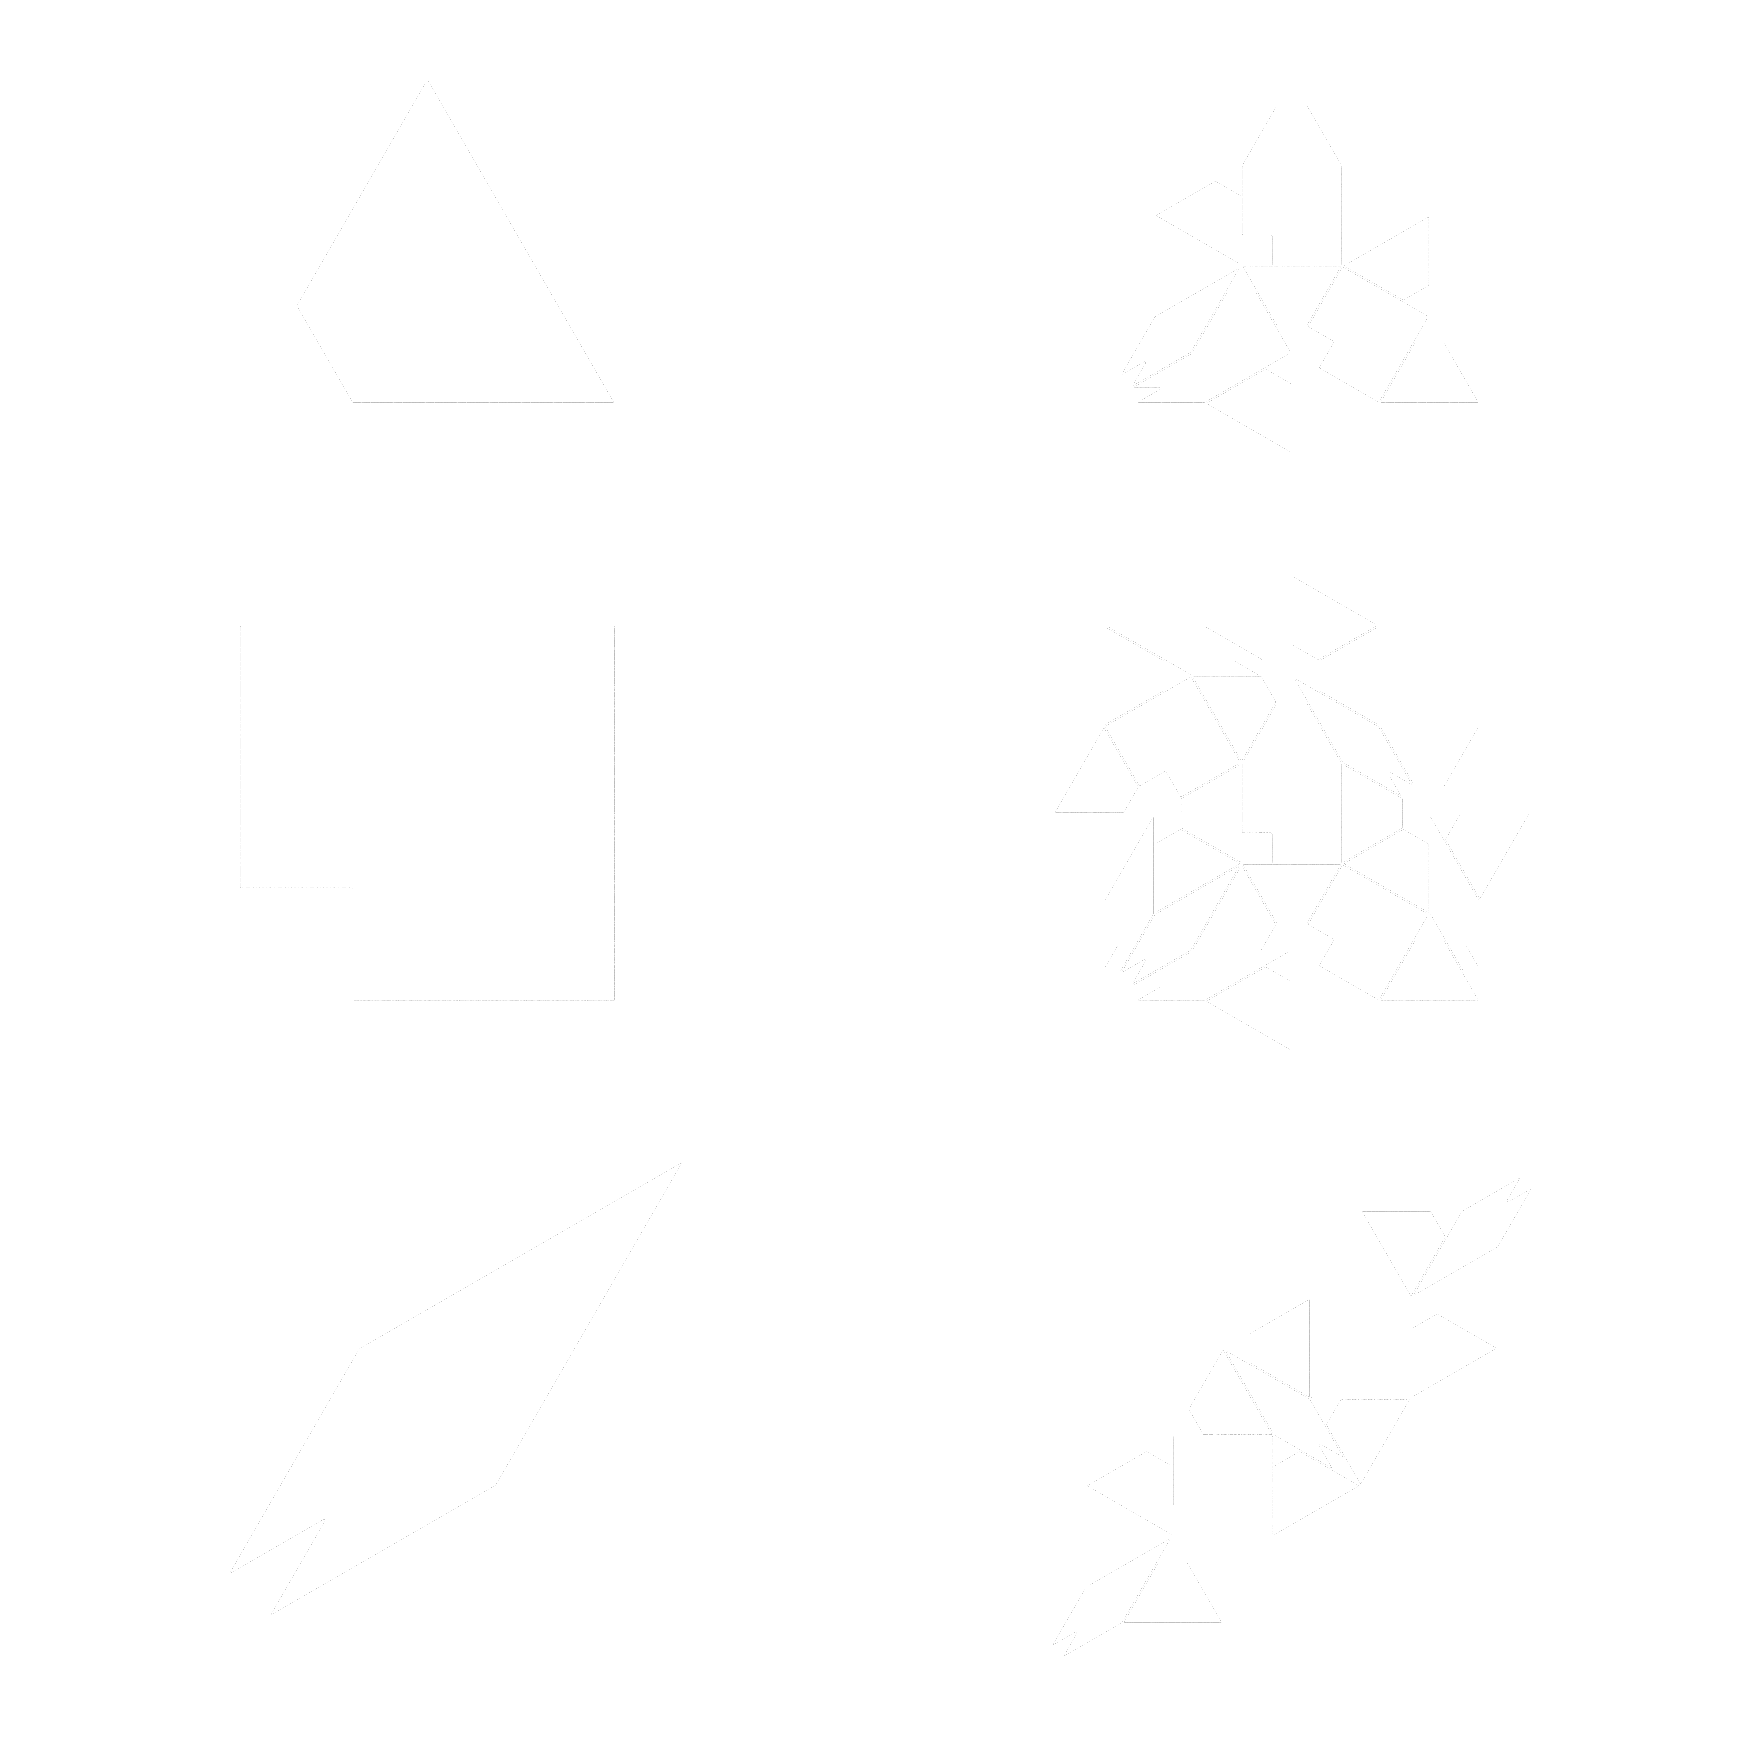 Prototiles and their associated rules for the Watanabe Ito Soma 12-fold tiling.